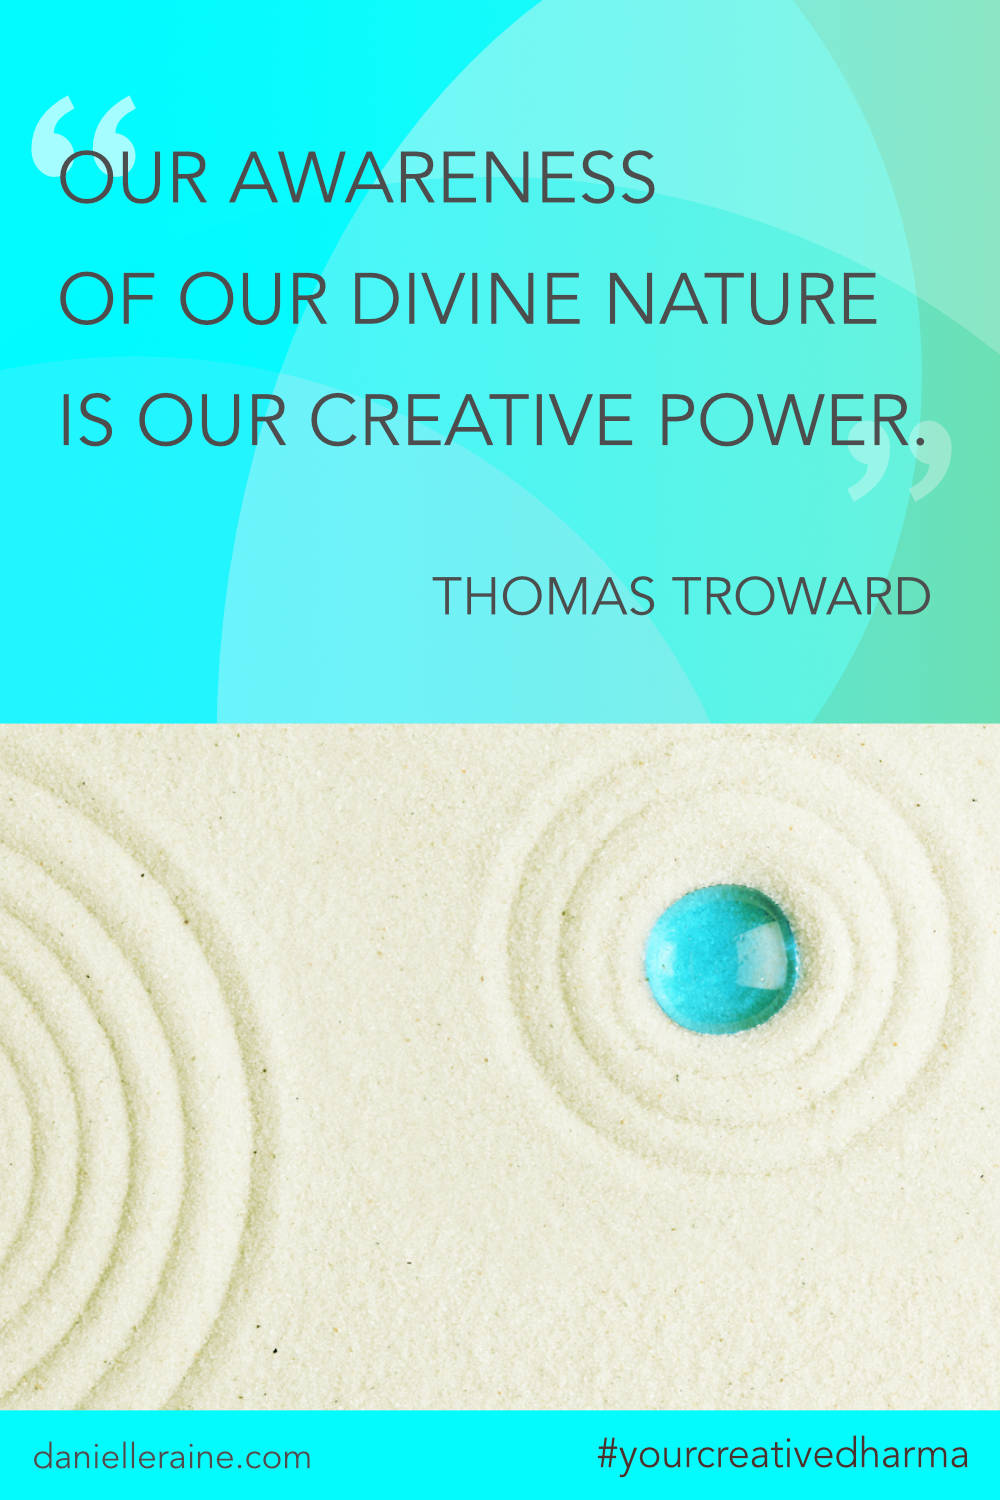 thomas troward quote divine nature creative power